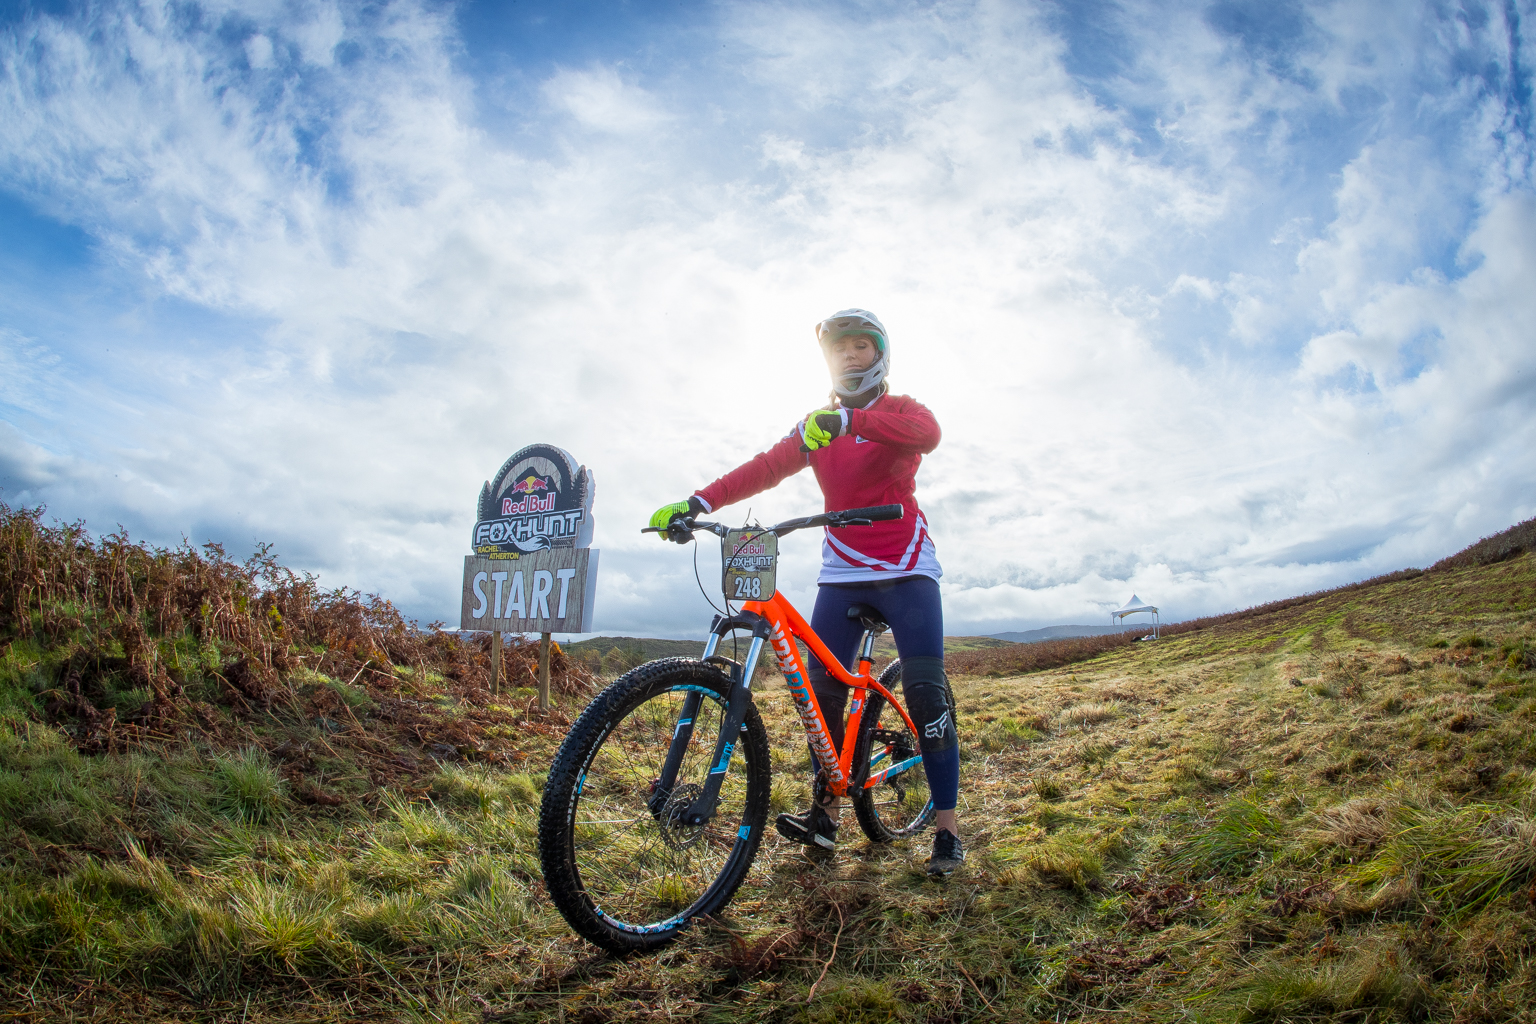 Faya - Fitness On Toast - Wales EE 4G Balloon Signal Bike Rural Apple Watch Adventure Cyclicing Downhill Mountain Bike Biking Workout Event-9